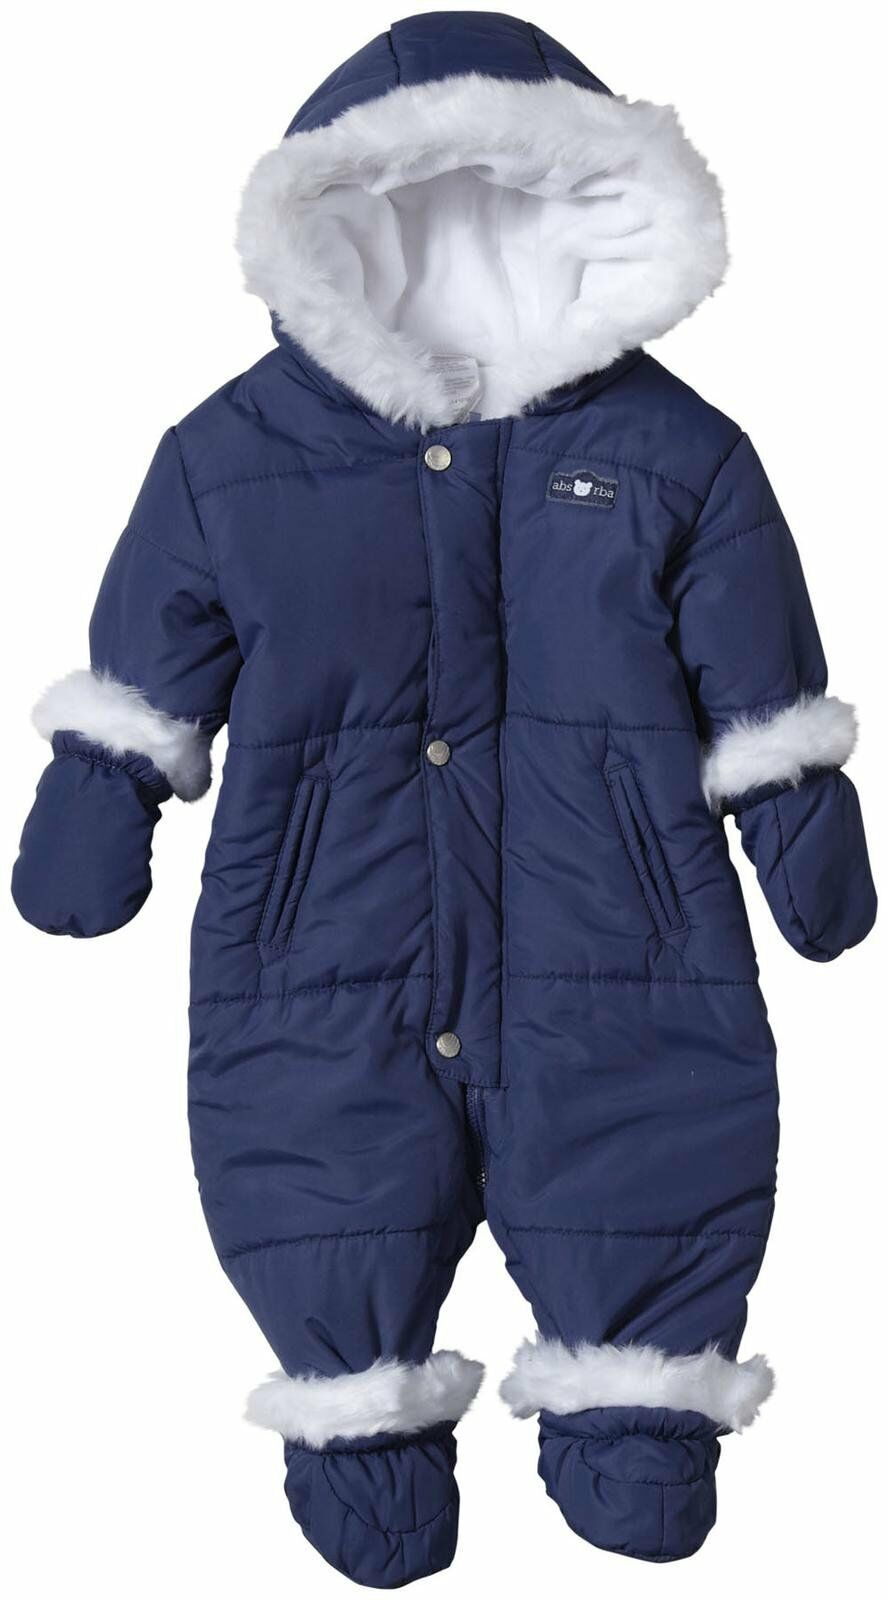 Shop our designer collection of baby snowsuits, snowbags and pramsuits. Discover our selection of luxury designer snowsuits, snowbags and pramsuits for babies. Shop now.